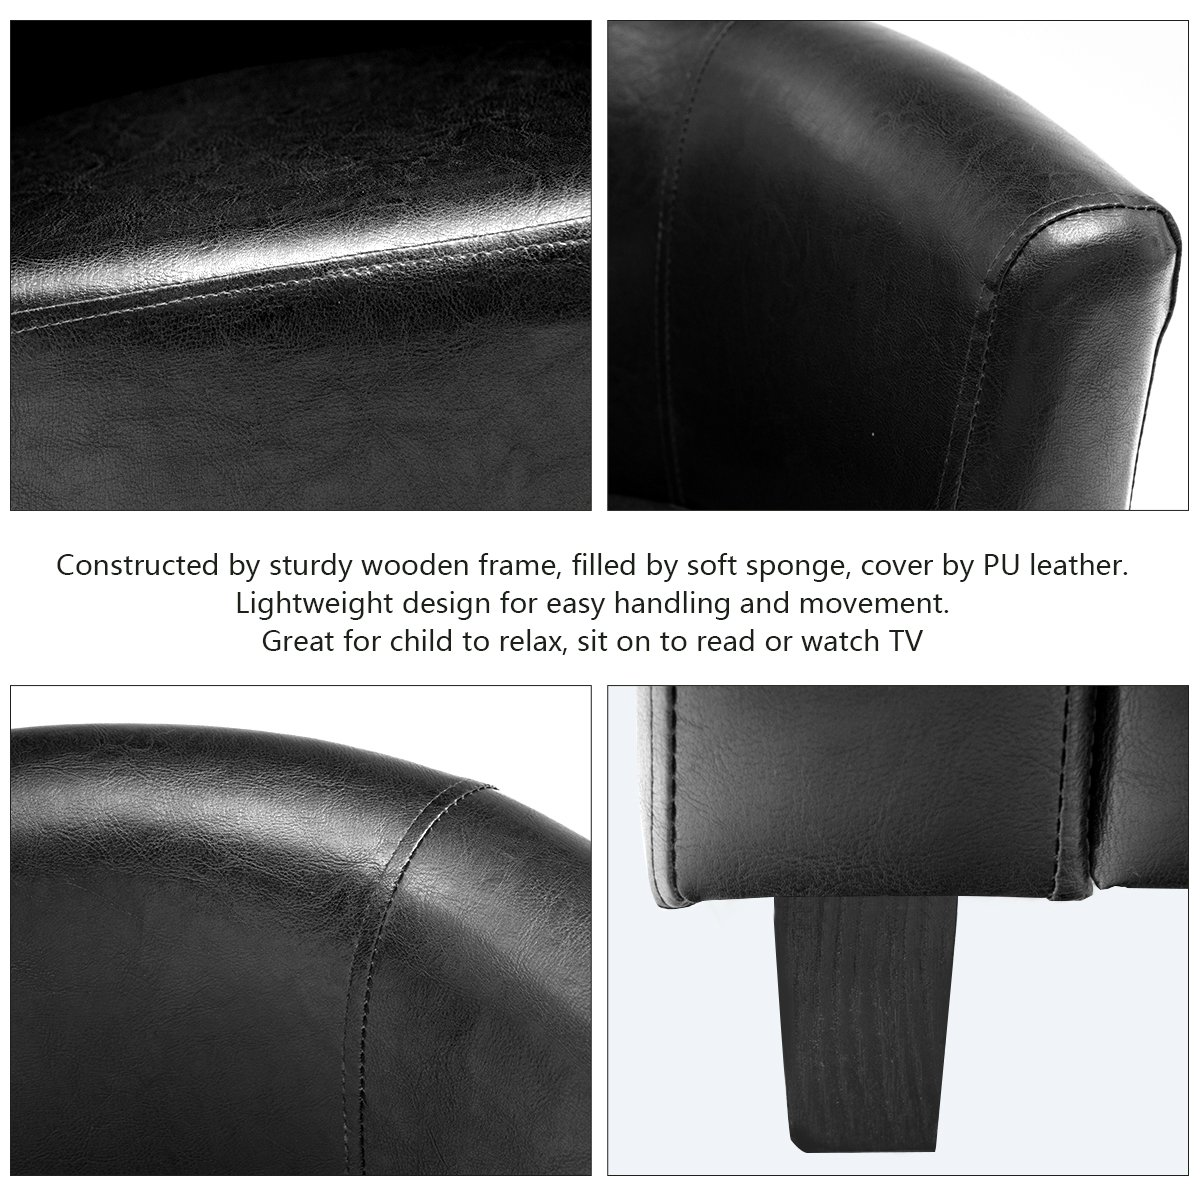 Costzon Kids Sofa Tub Chair Couch Children Living Room Toddler Furniture (PU Leather, Black) by Costzon (Image #3)